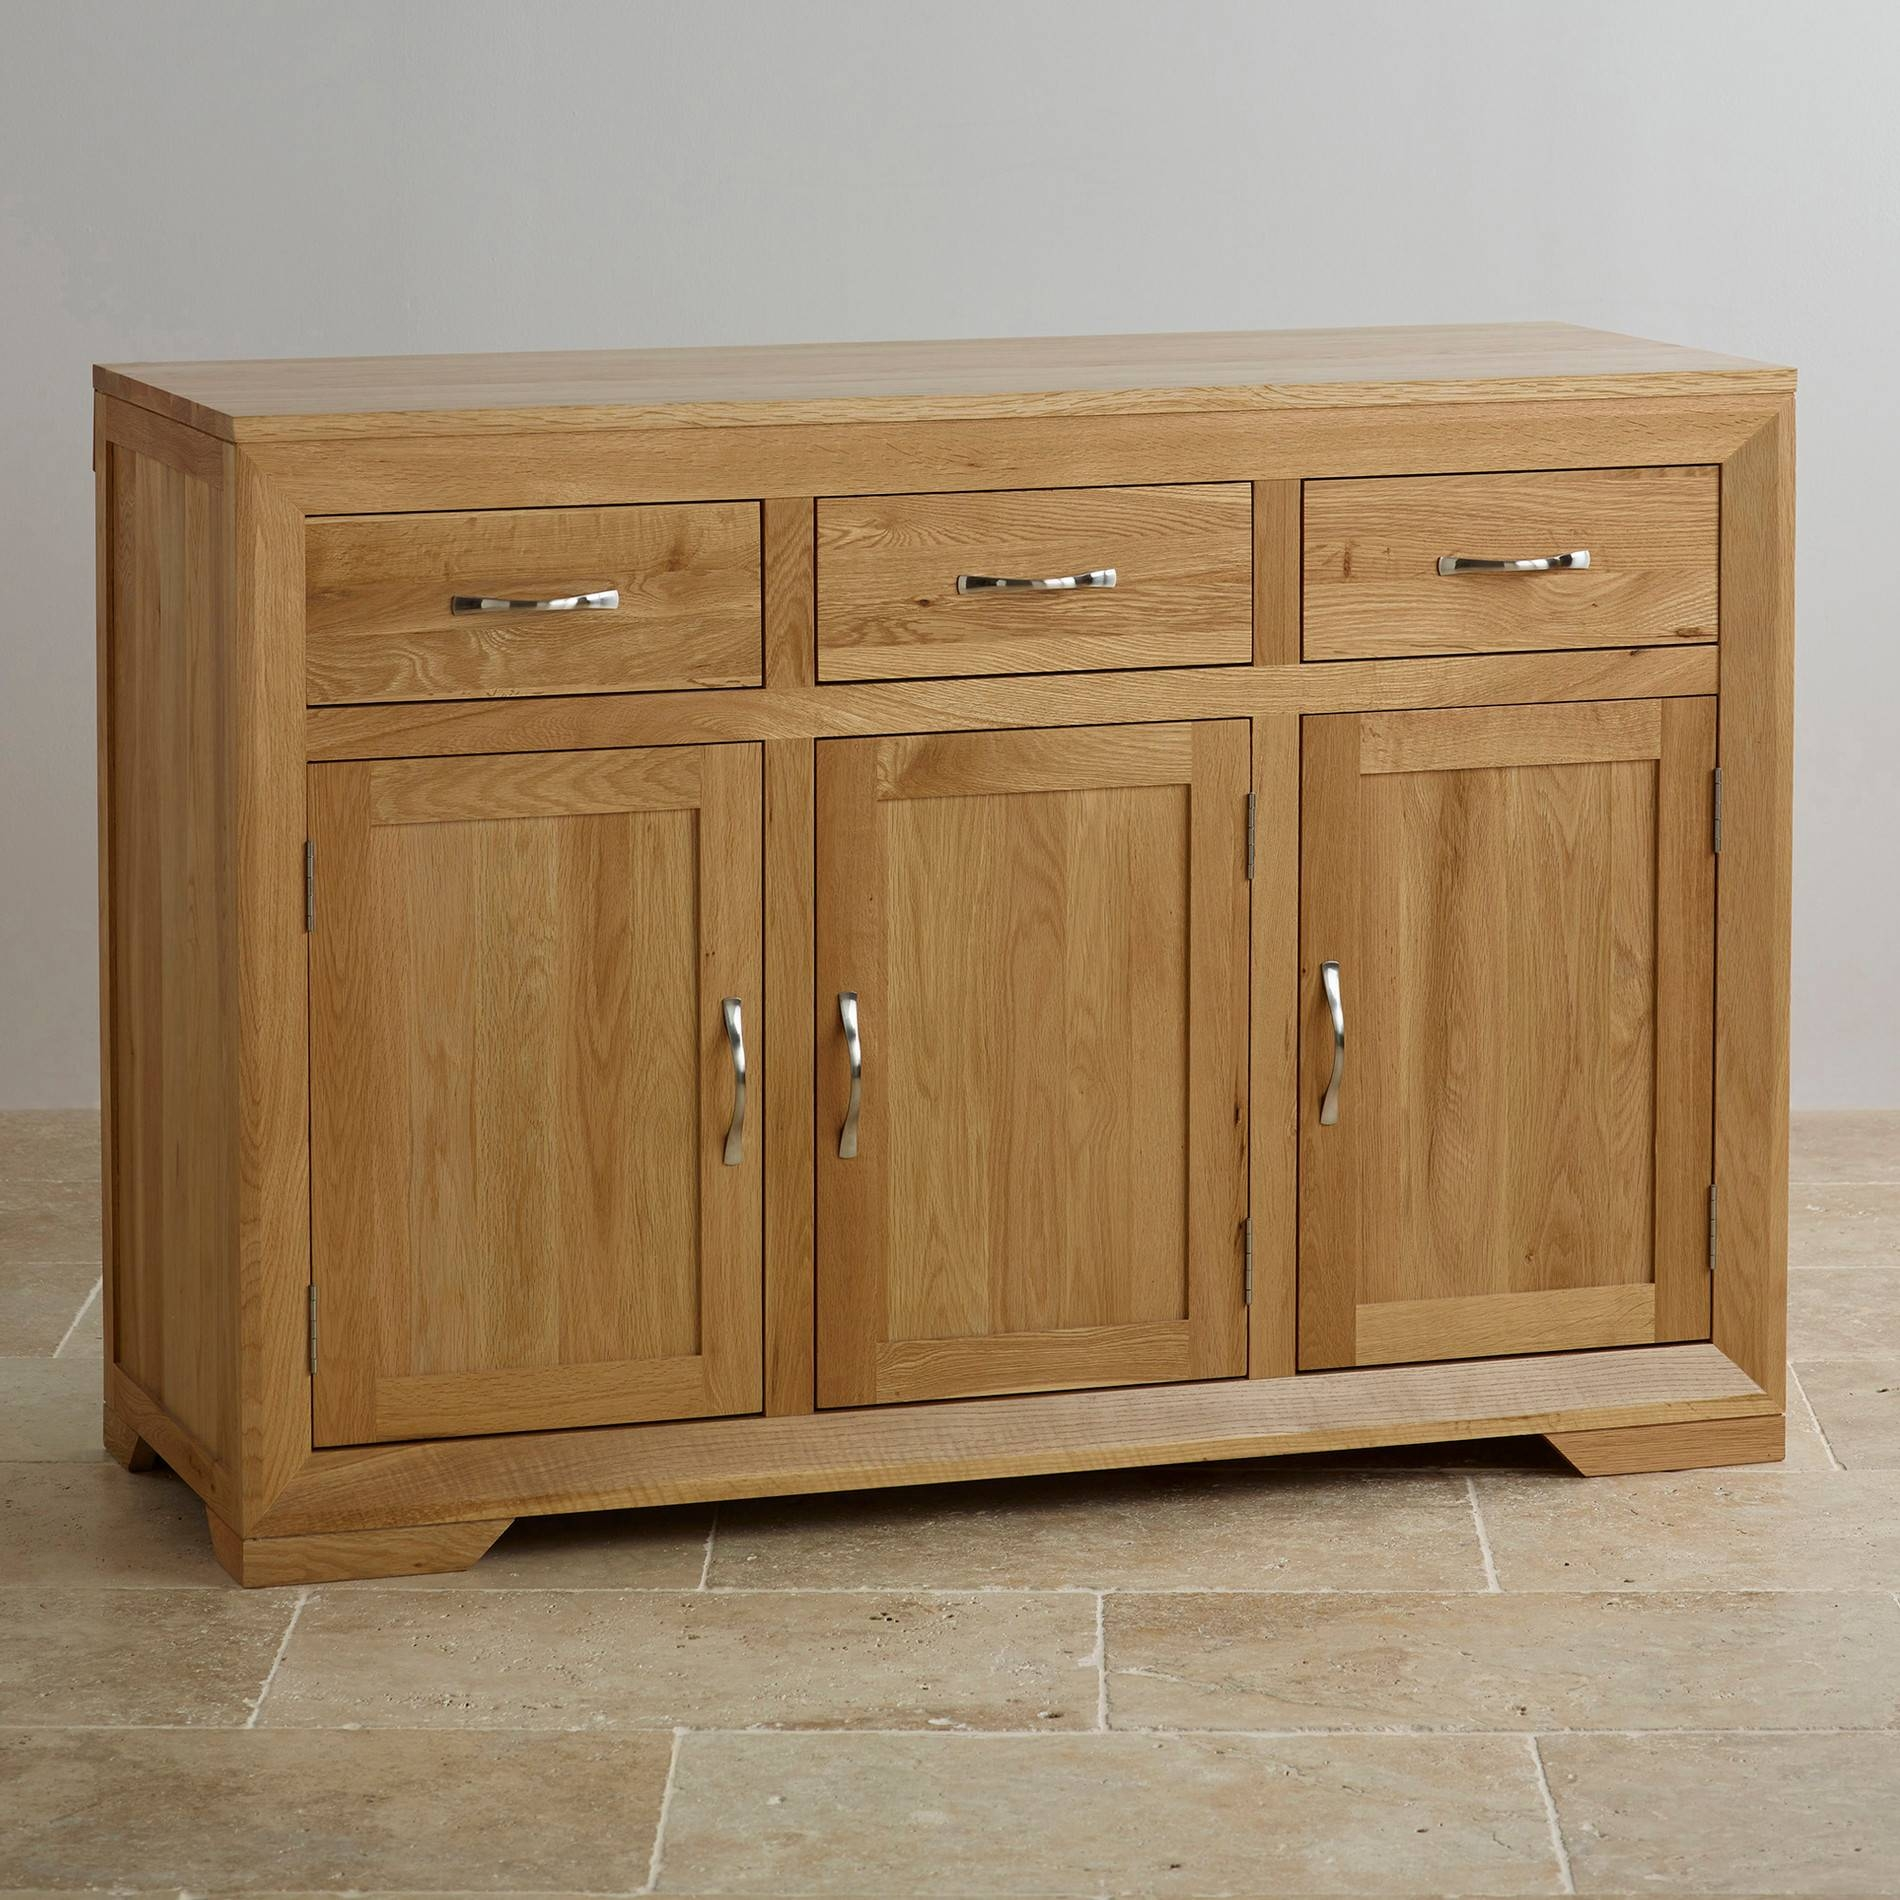 Sideboards | 100% Solid Hardwood | Oak Furniture Land Intended For Slim Sideboards (View 24 of 30)